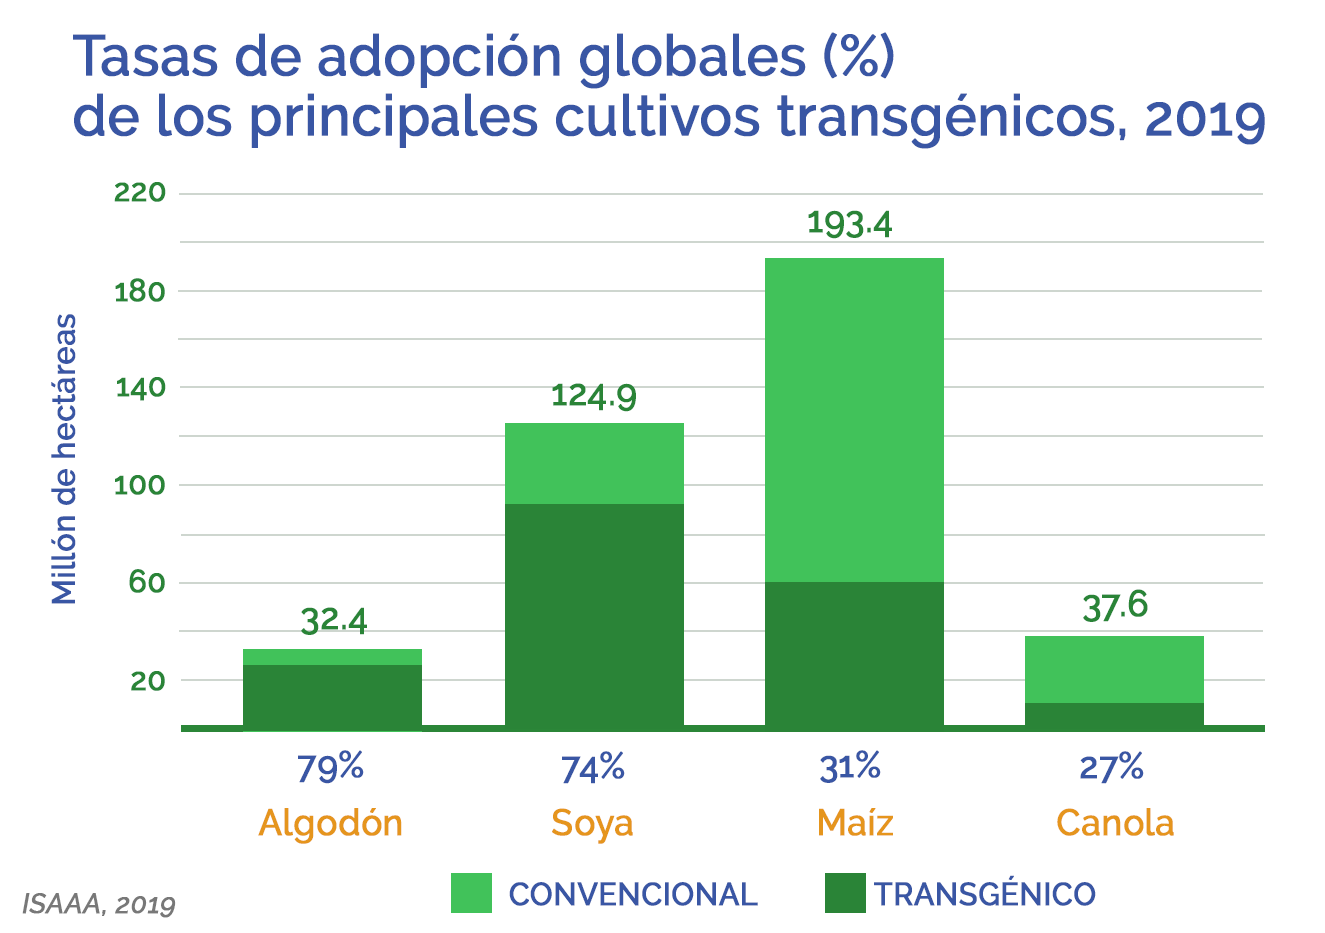 TablaAdopcionGlobal CultivosTransgenicos